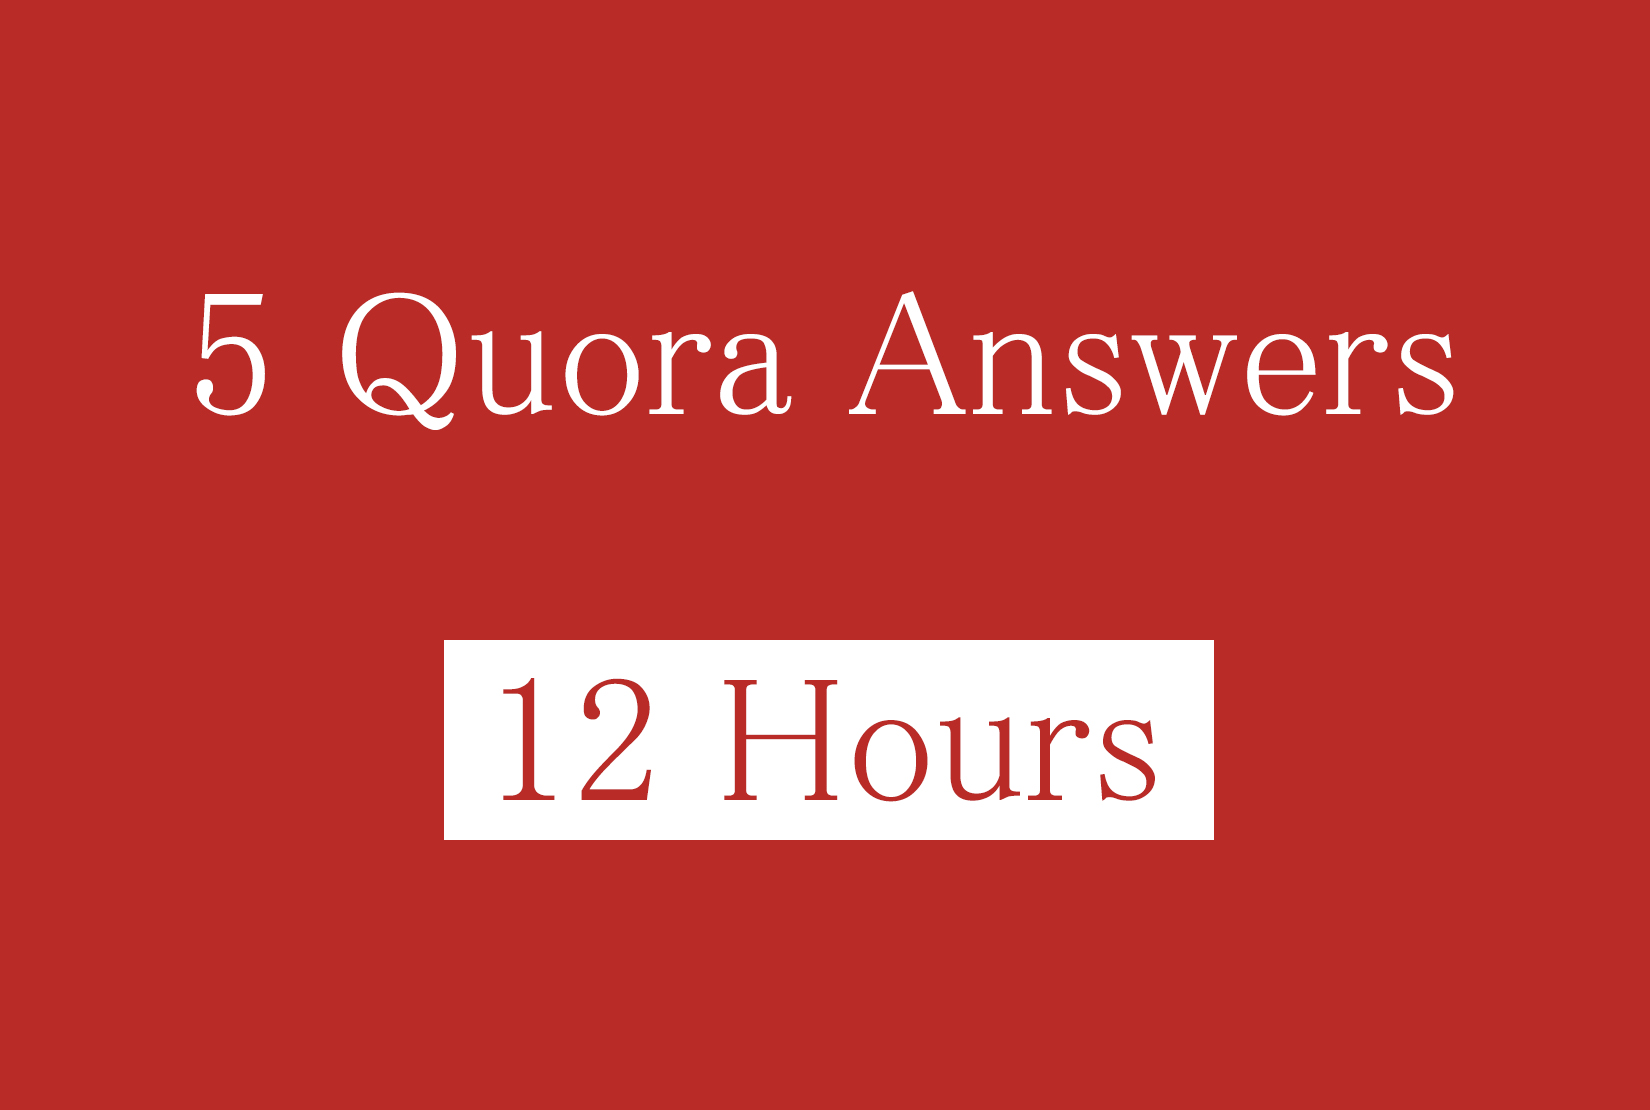 5 HQ quora answer in 12 hours for your website ranking